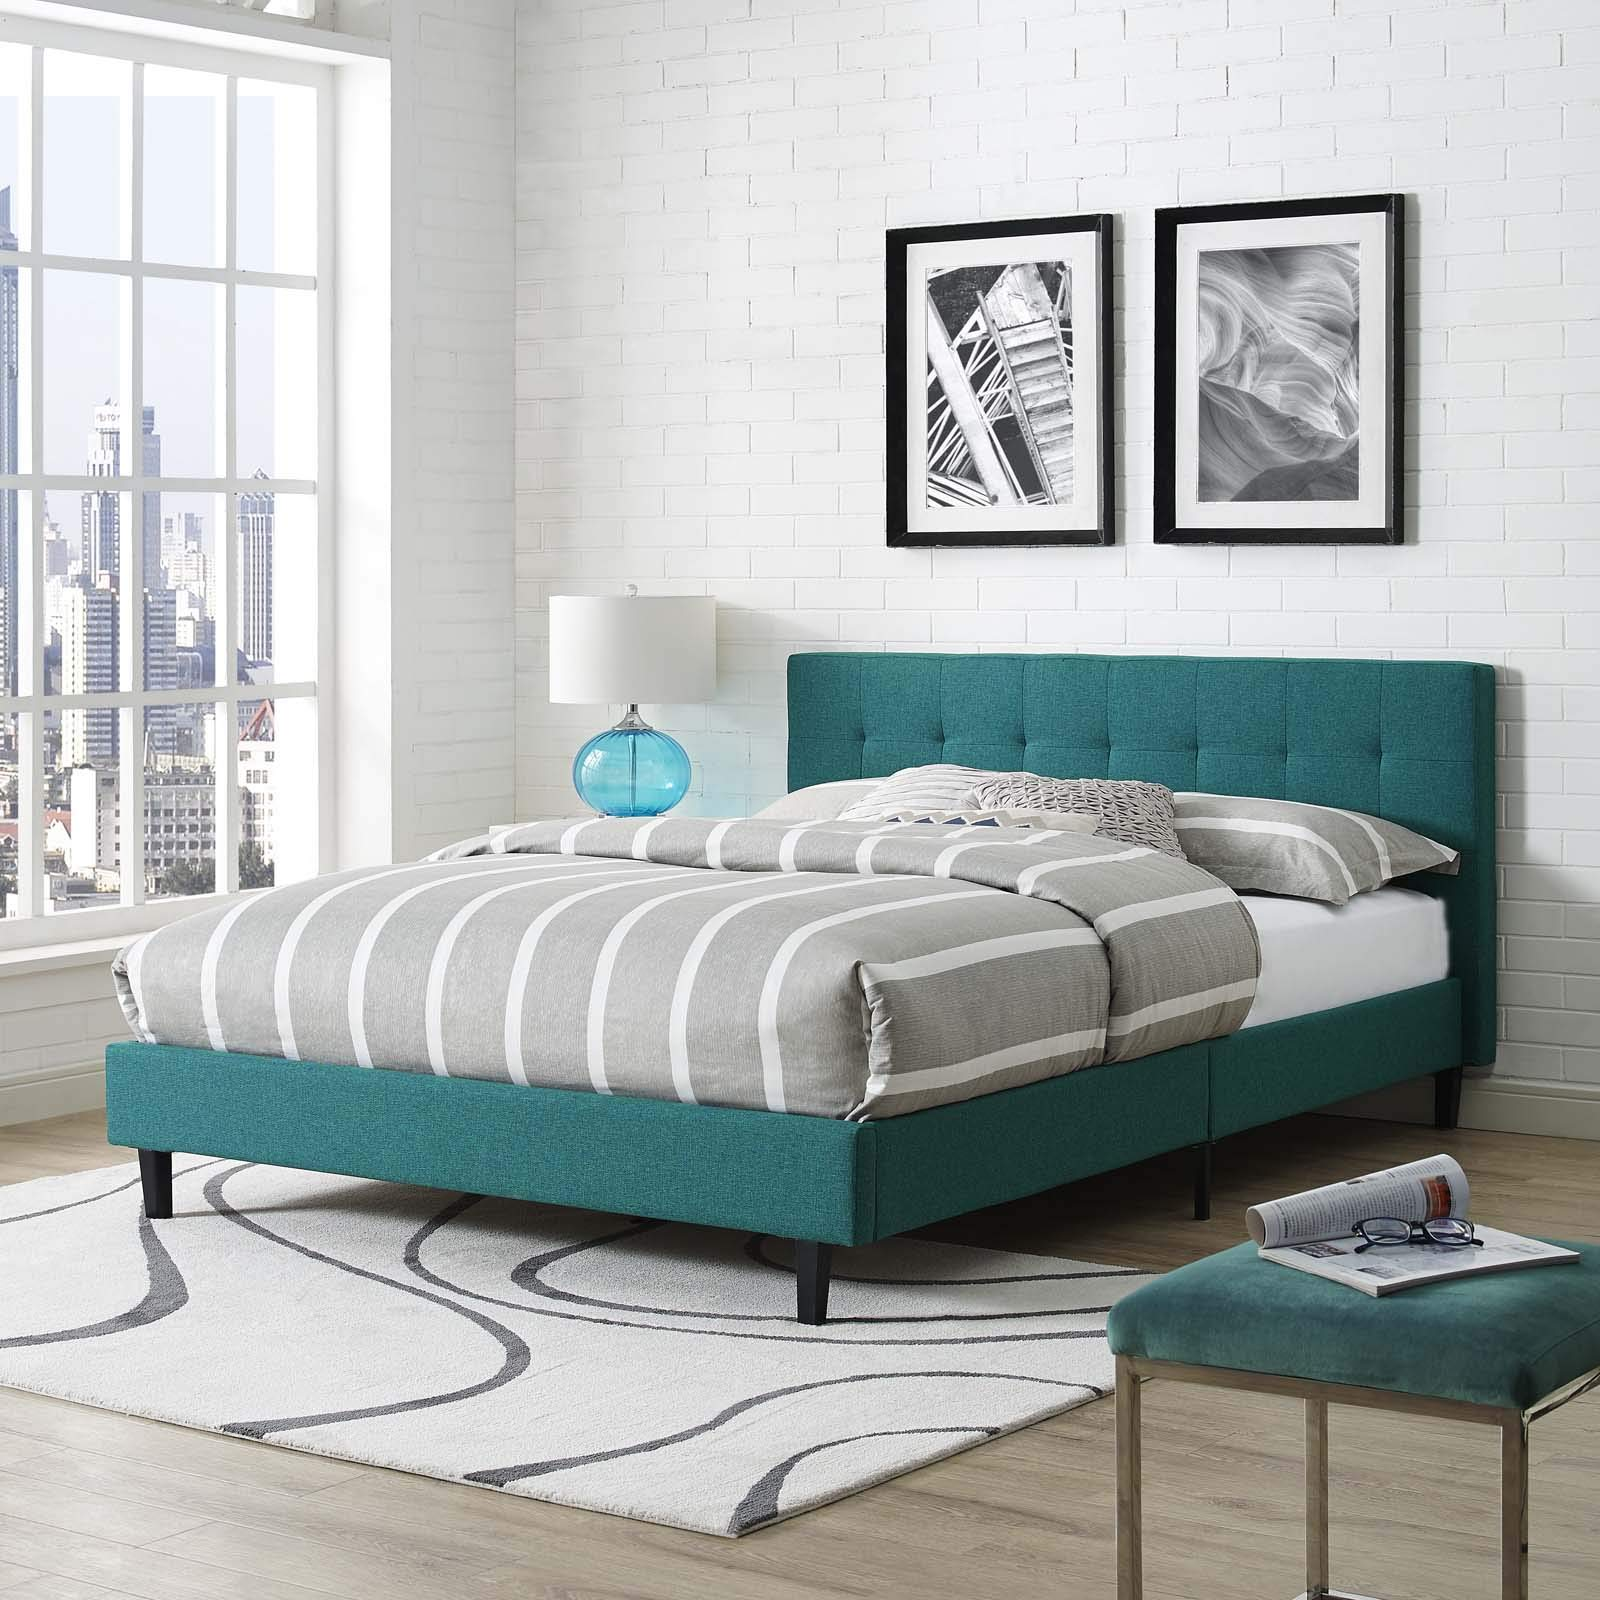 Modway Linnea Upholstered Teal Platform Bed with Wood Slat Support in Full